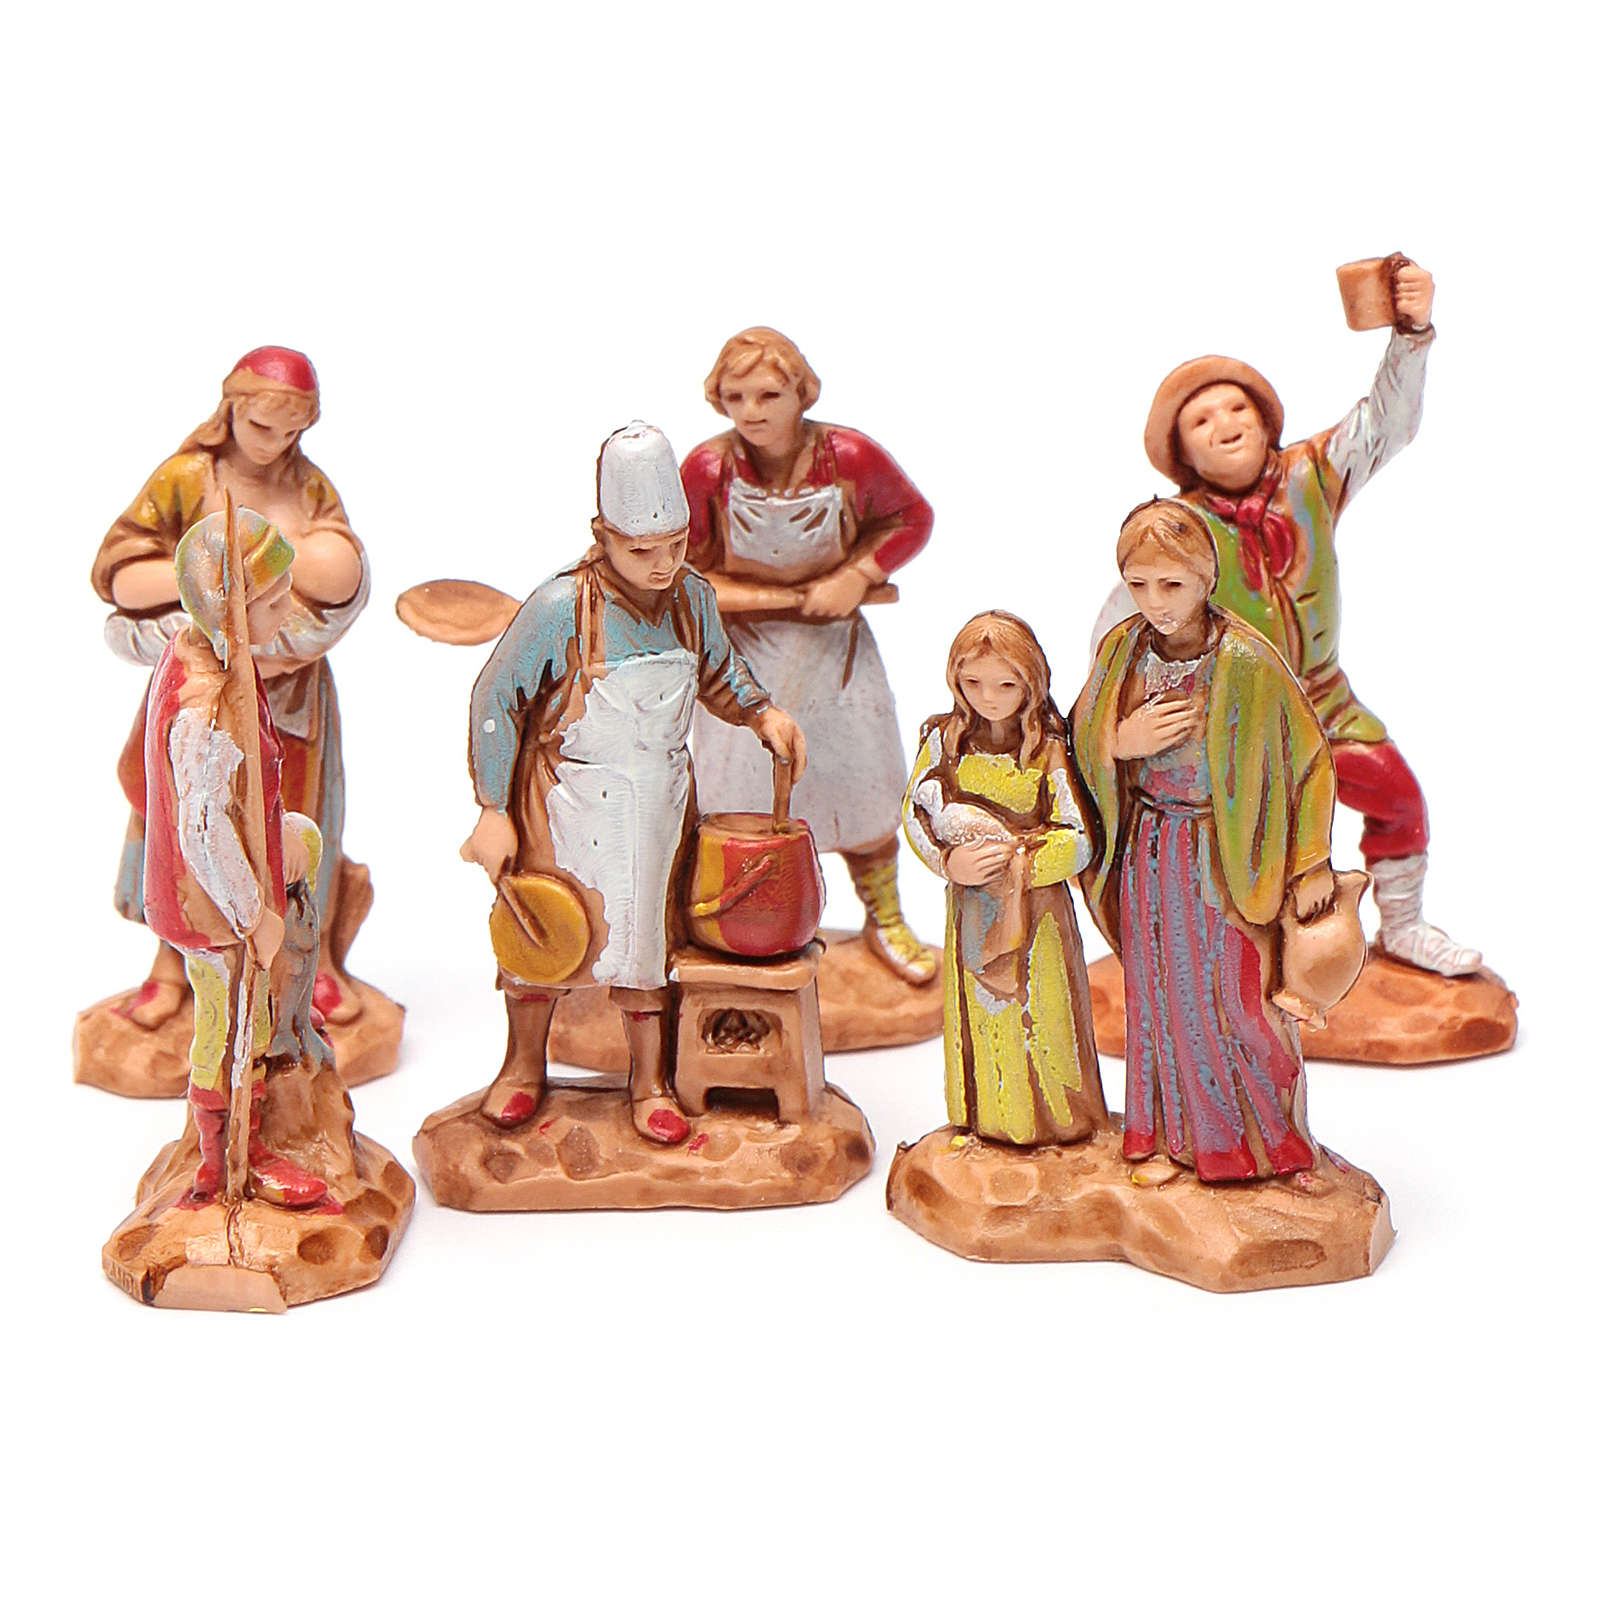 Nativity Scene characters figurines by Moranduzzo 3.5cm, 6 pieces 4